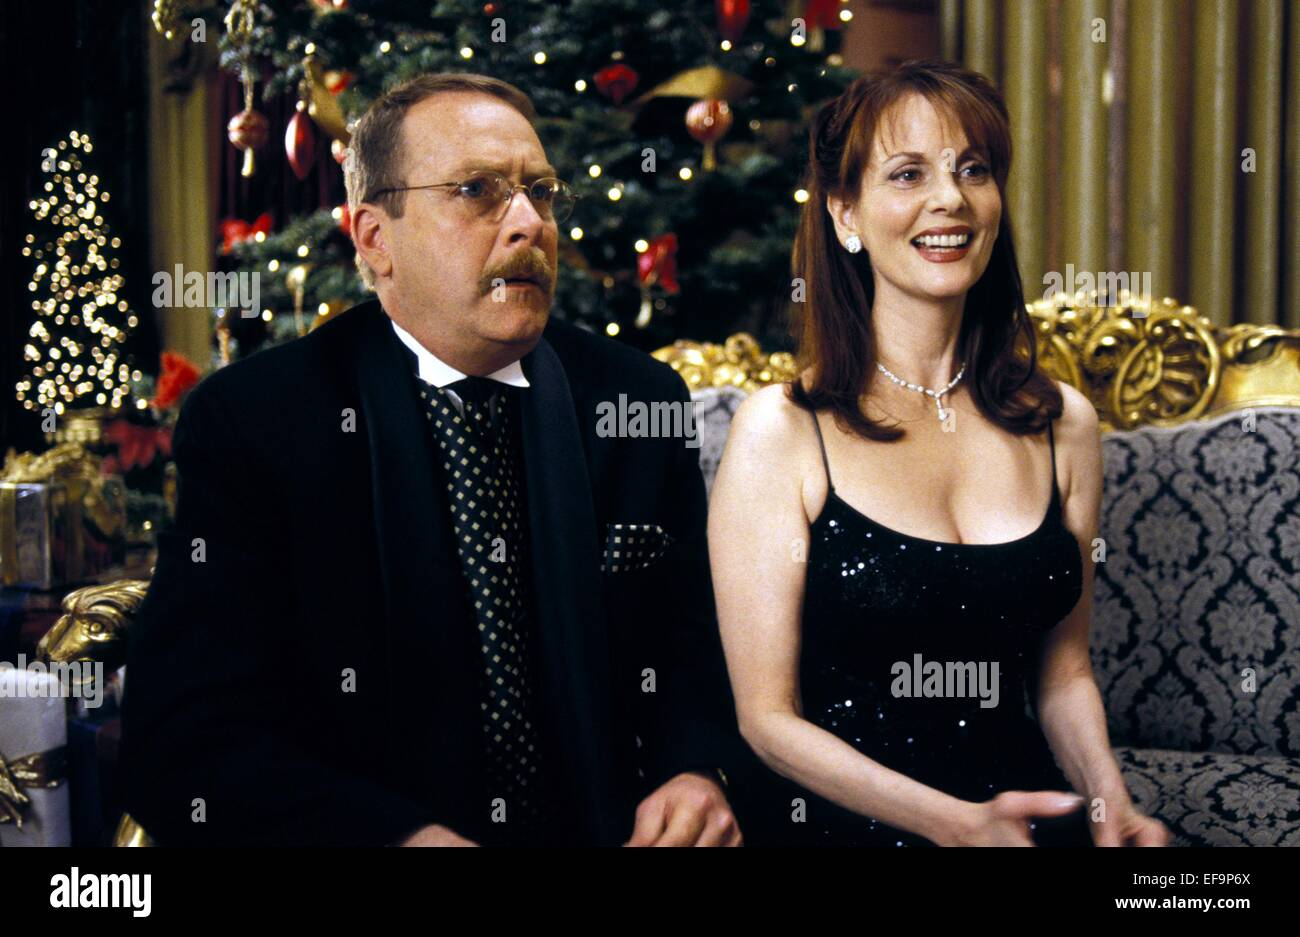 Richie Richs Christmas Wish.Martin Mull Lesley Ann Warren Richie Rich S Christmas Wish